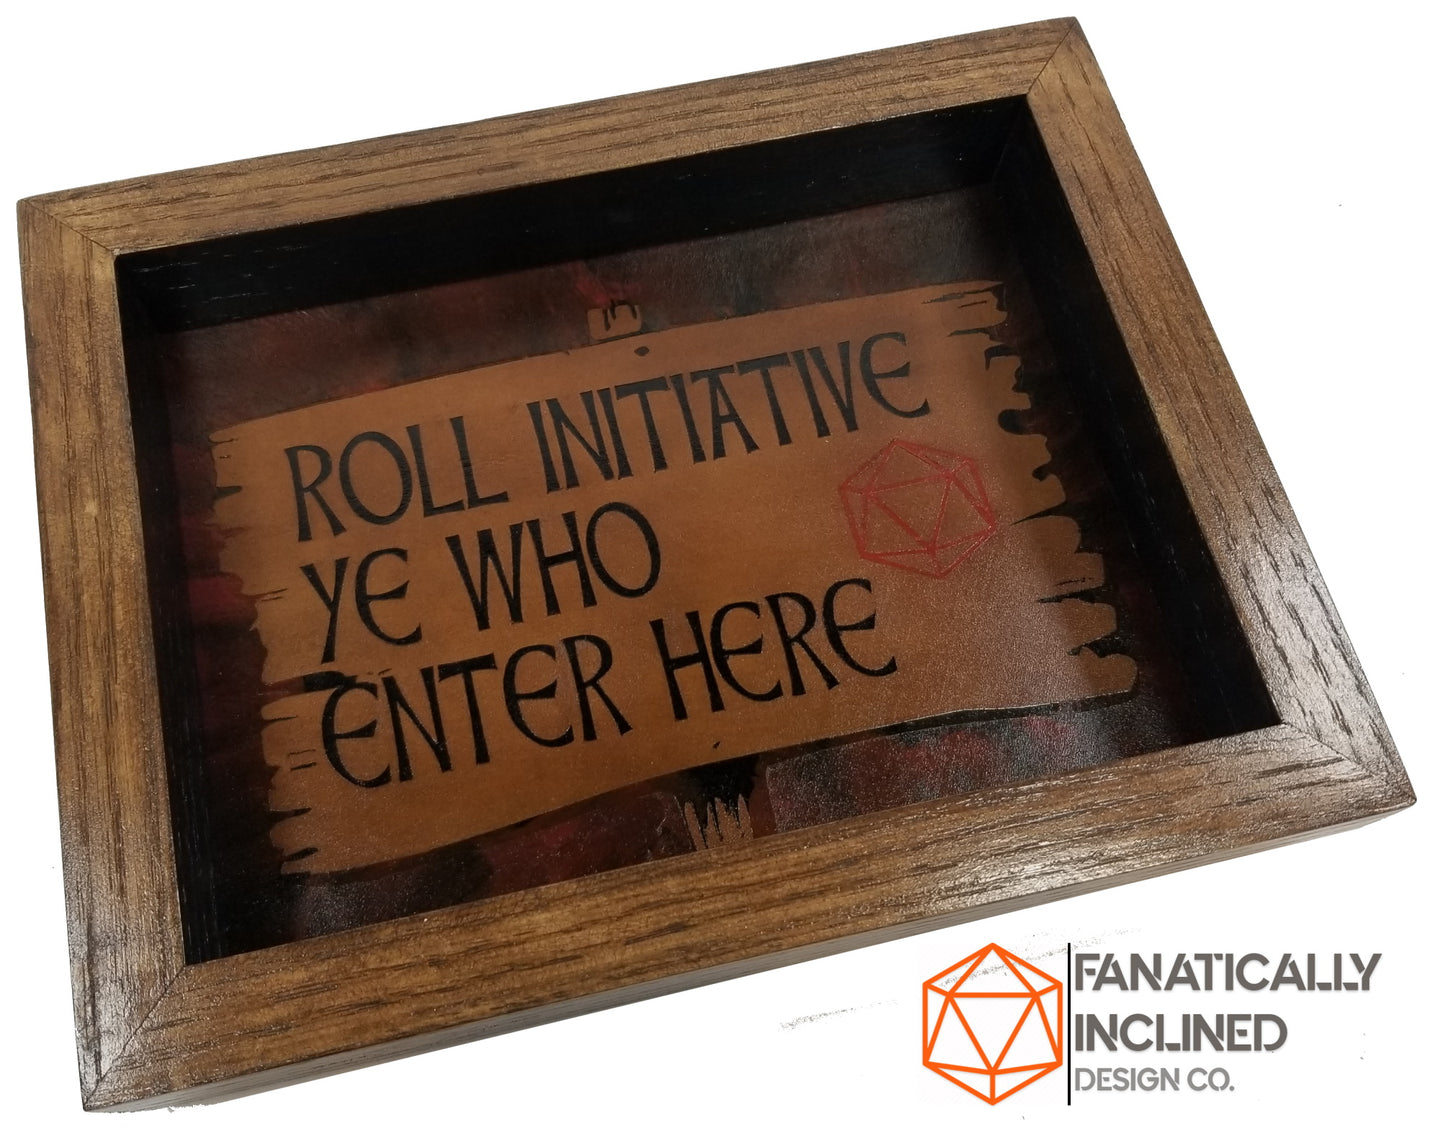 Roll Initiative Ye Who Enter Here Handmade Oak Wood and Leather Dice Tray